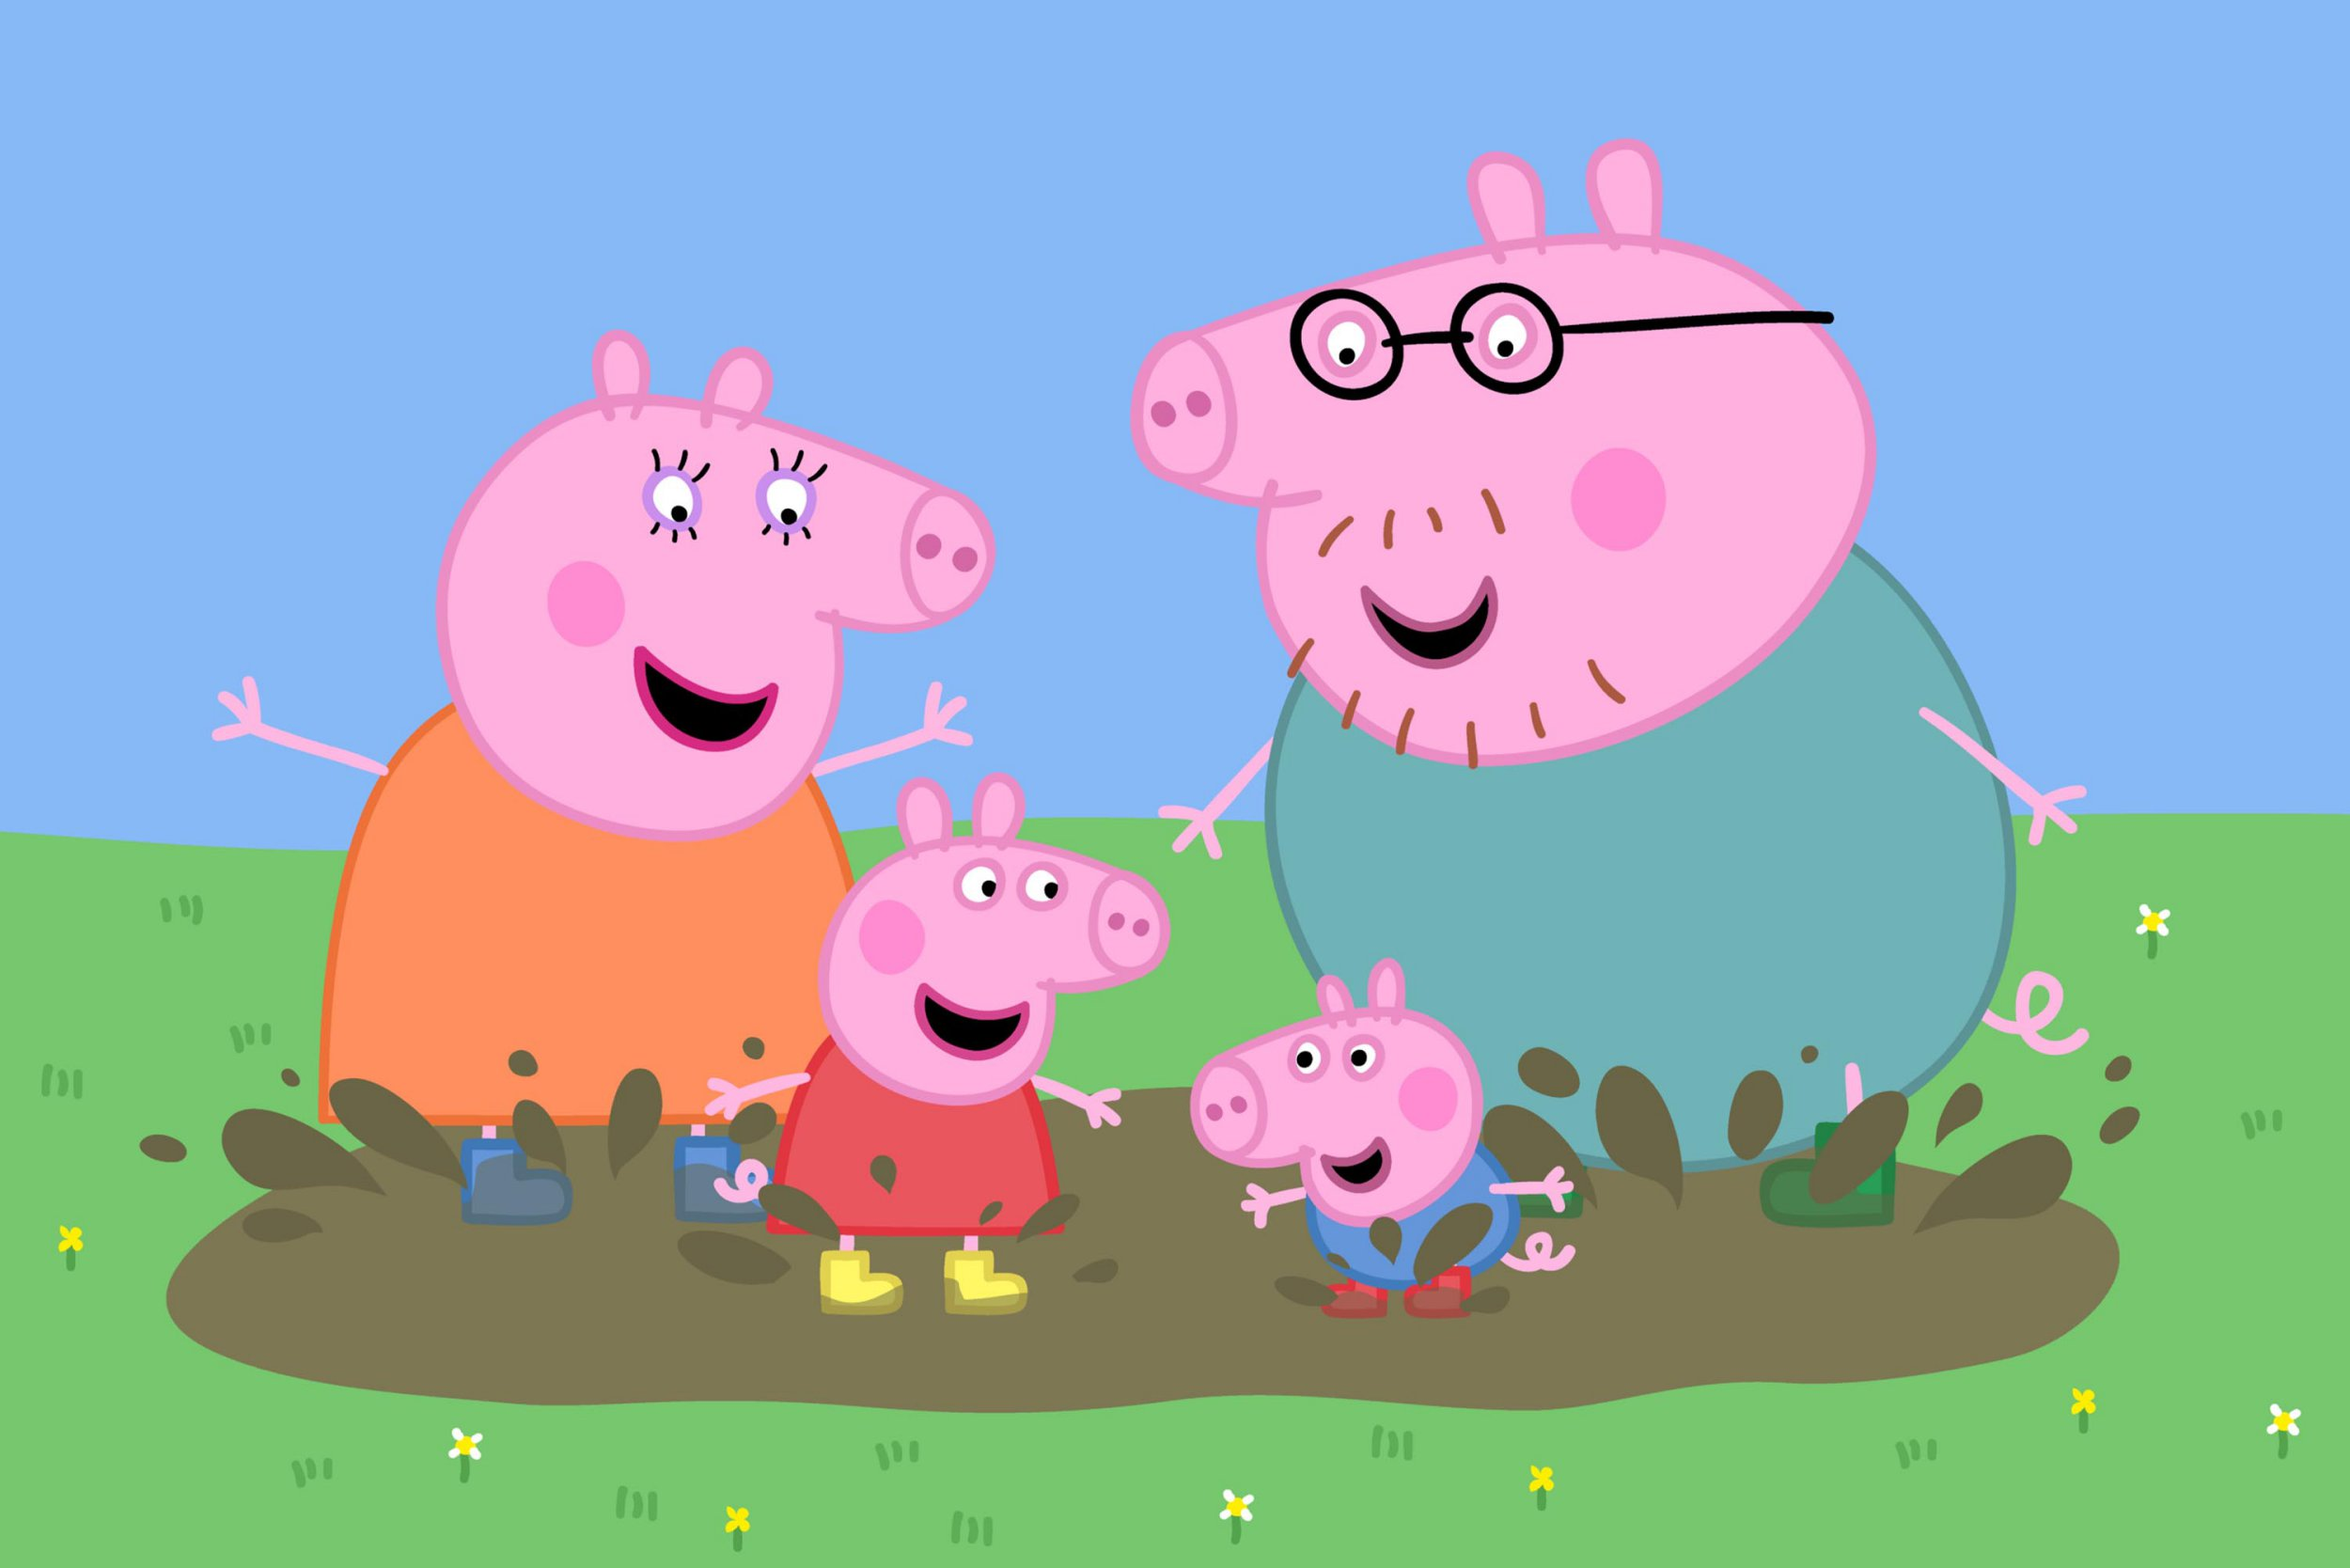 Television programme, 'Peppa Pig' TX CHANNEL 5 BROADCASTING. Peppa and family. Five Stills: 0207 550 5509. Free for editorial press and listings use in connection with the current broadcast of Channel 5 programmes only. This Image may only be reproduced with the prior written consent of Channel 5. Not for any form of advertising, internet use or in connection with the sale of any product.